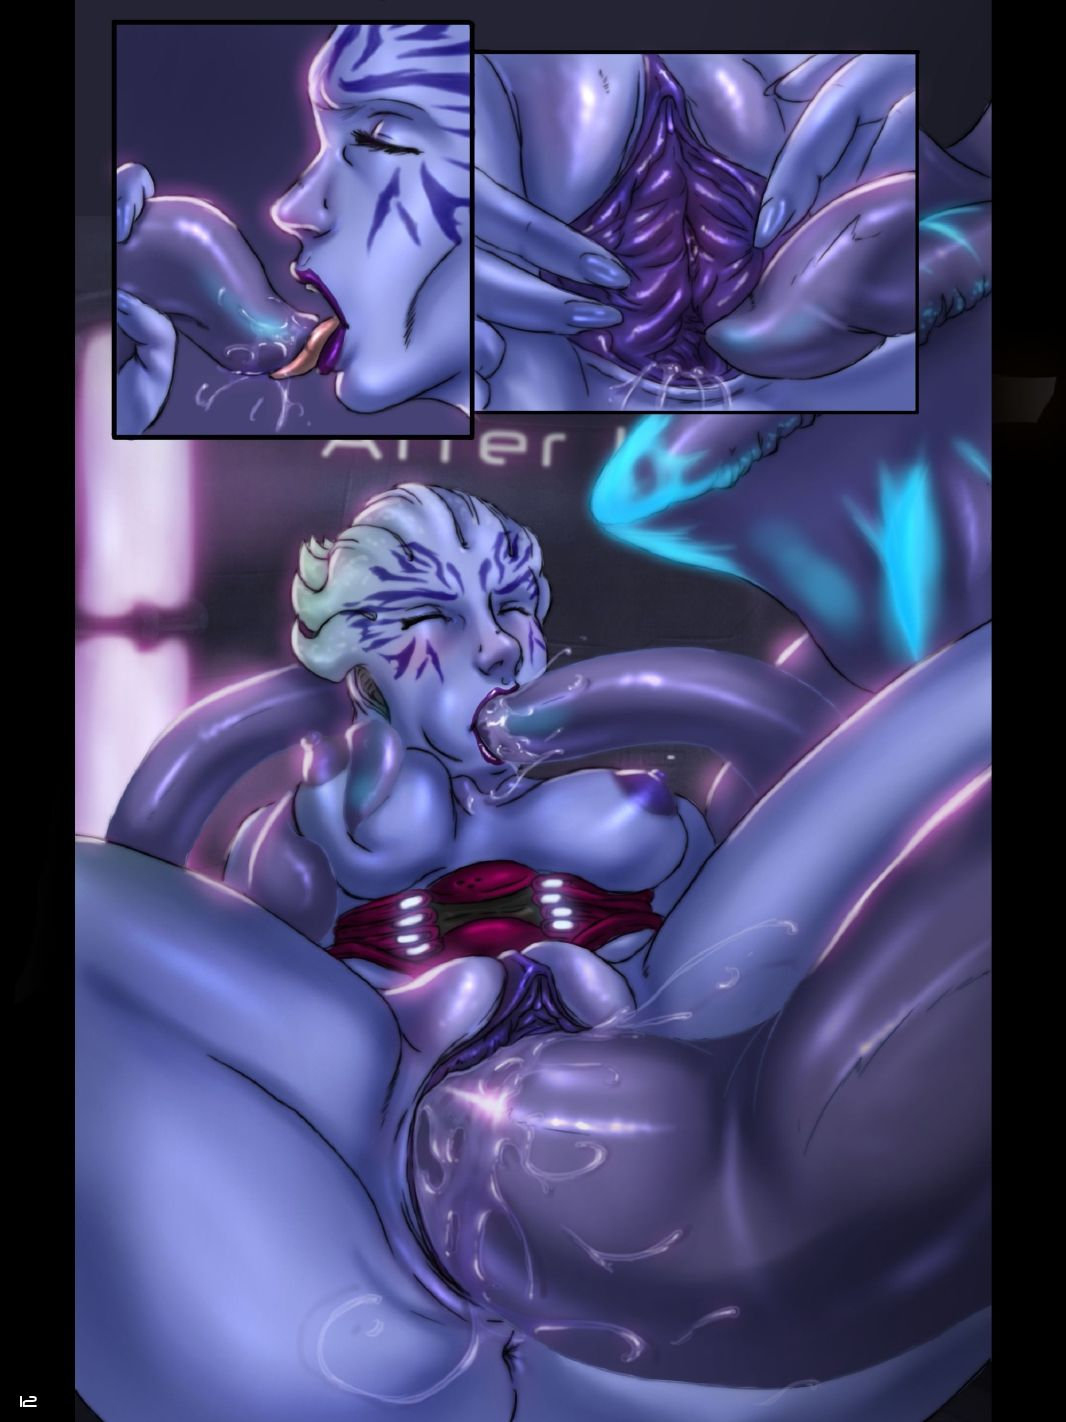 FORNAX_The_galaxys_finest_xenophilia_(Mass_Effect) comix_57922.jpg